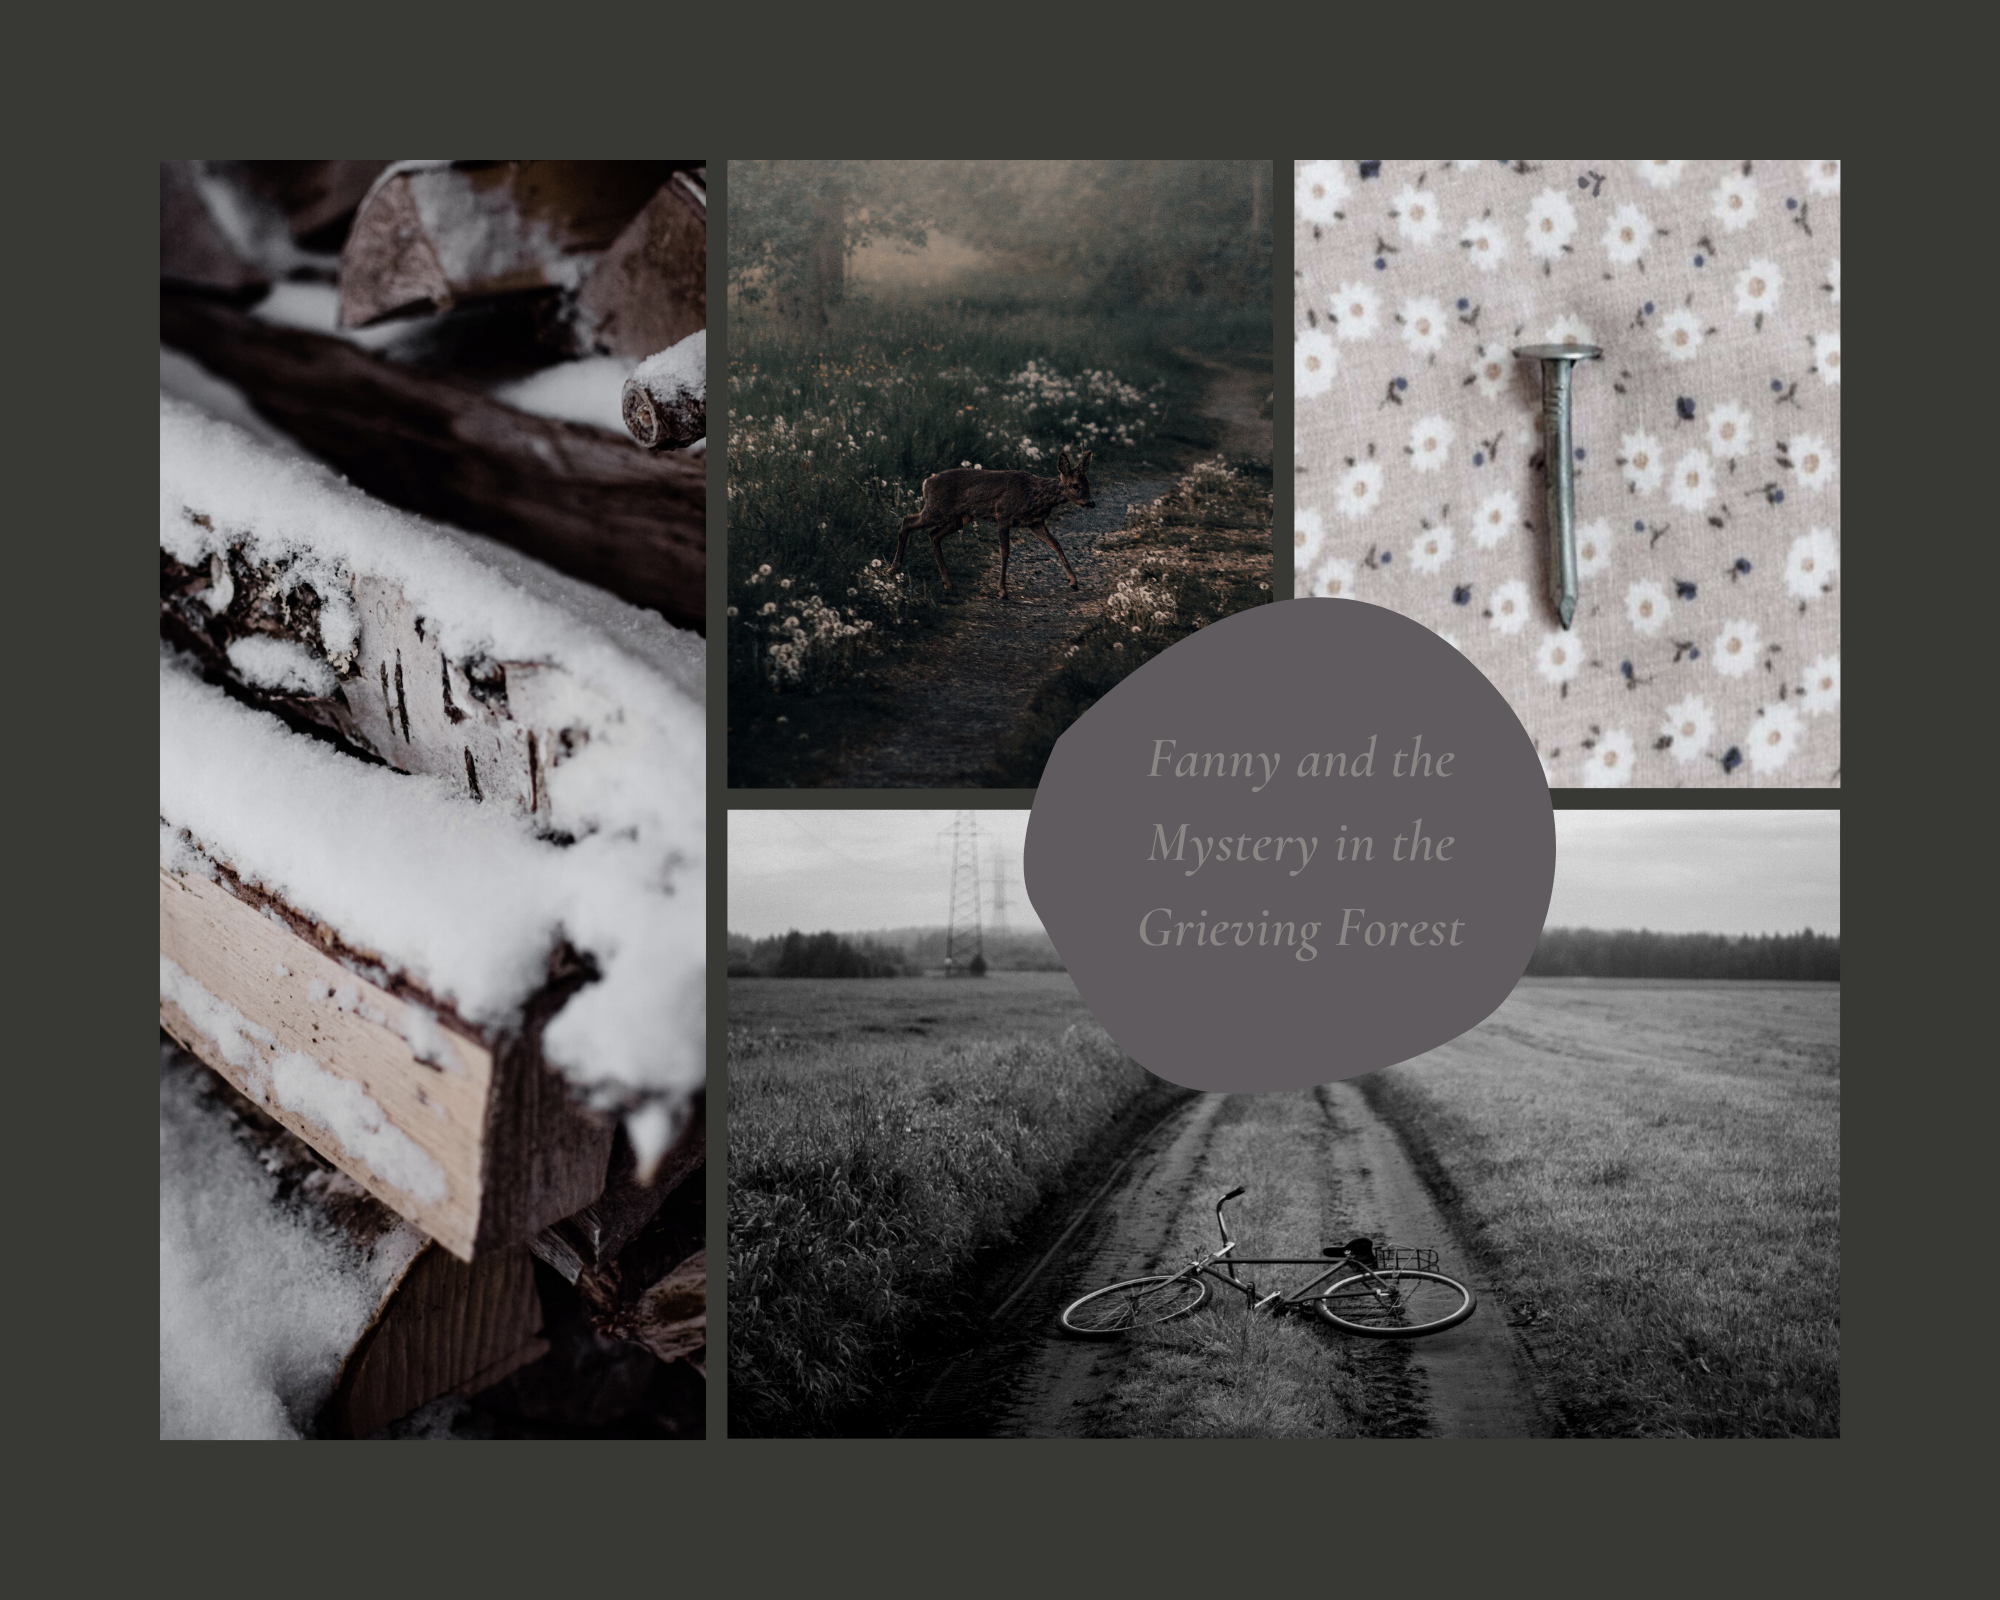 A mood board inspired by the Rune Christiansen novel, Fanny and the Mystery in the Grieving Forest